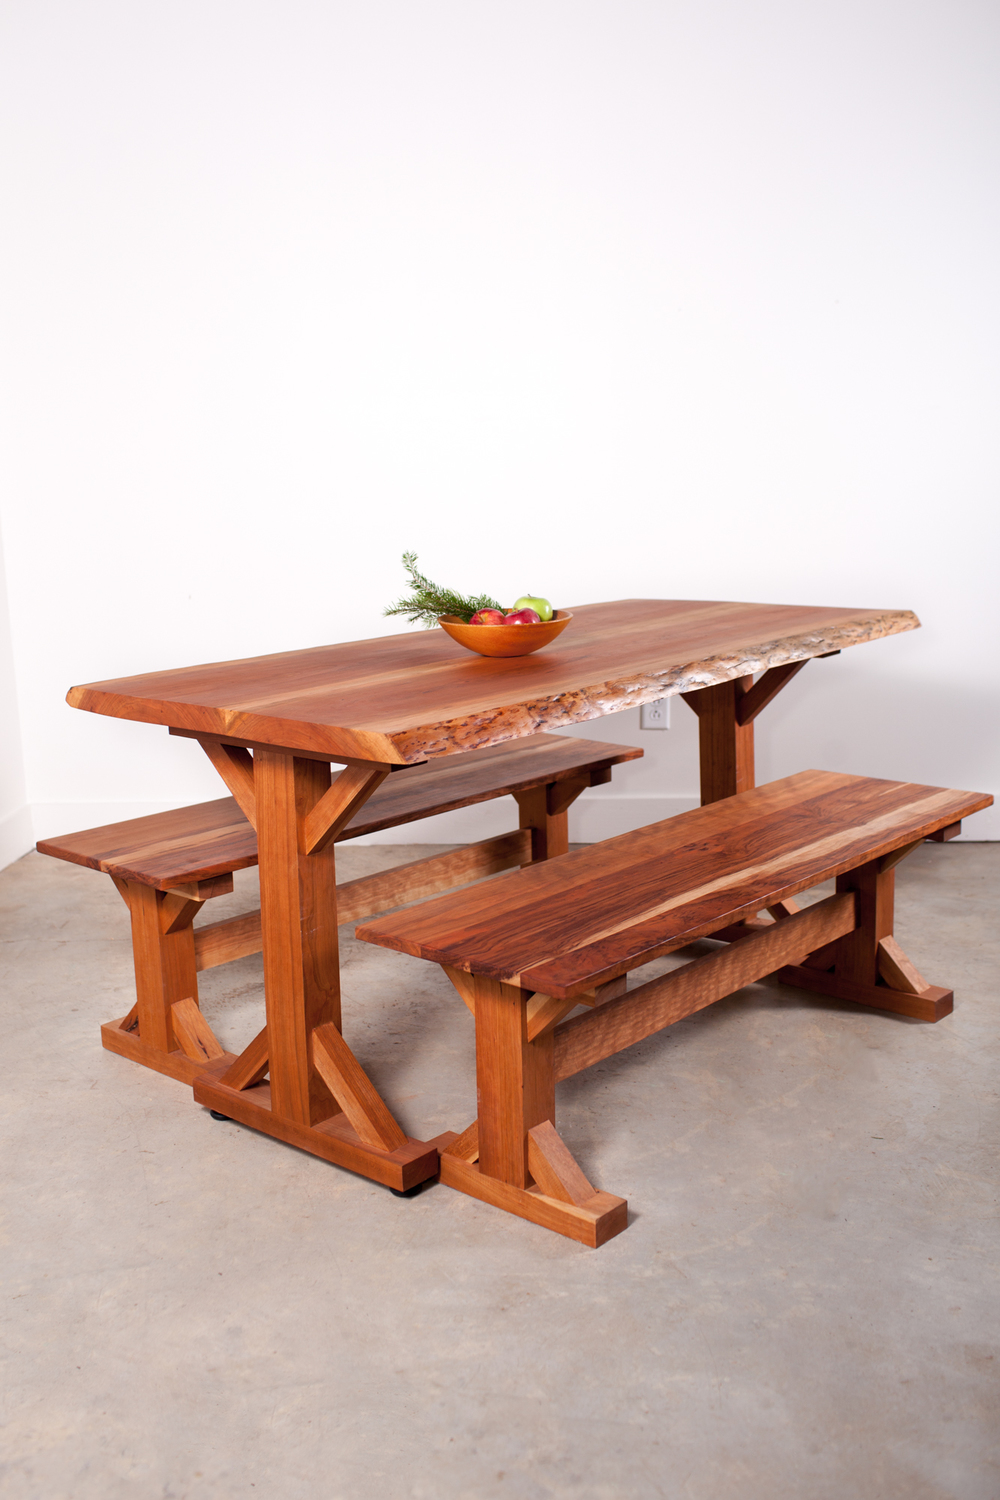 Cherry Slab Table with Benches